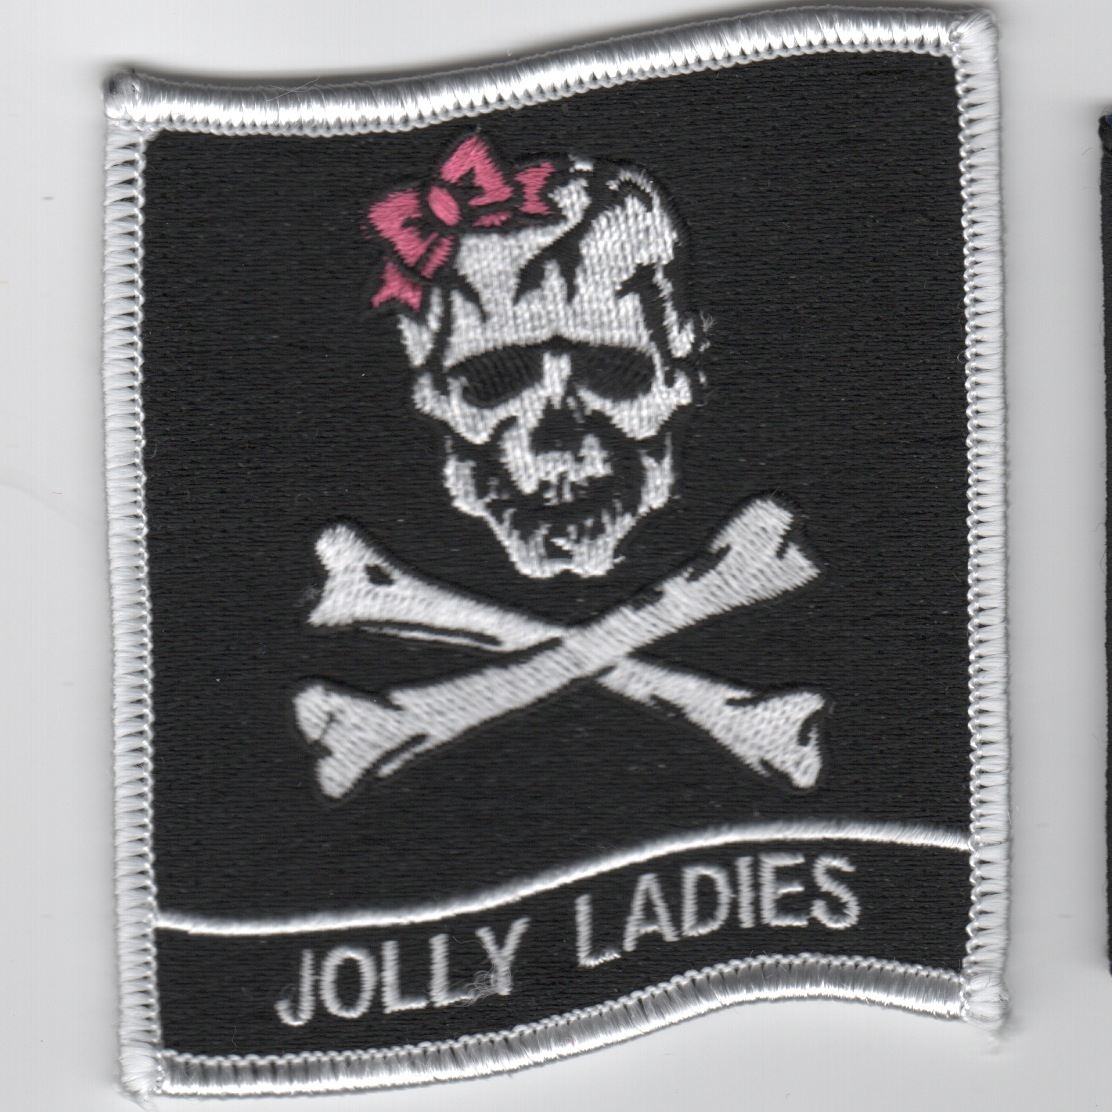 VF-103 'Jolly Ladies' Patch